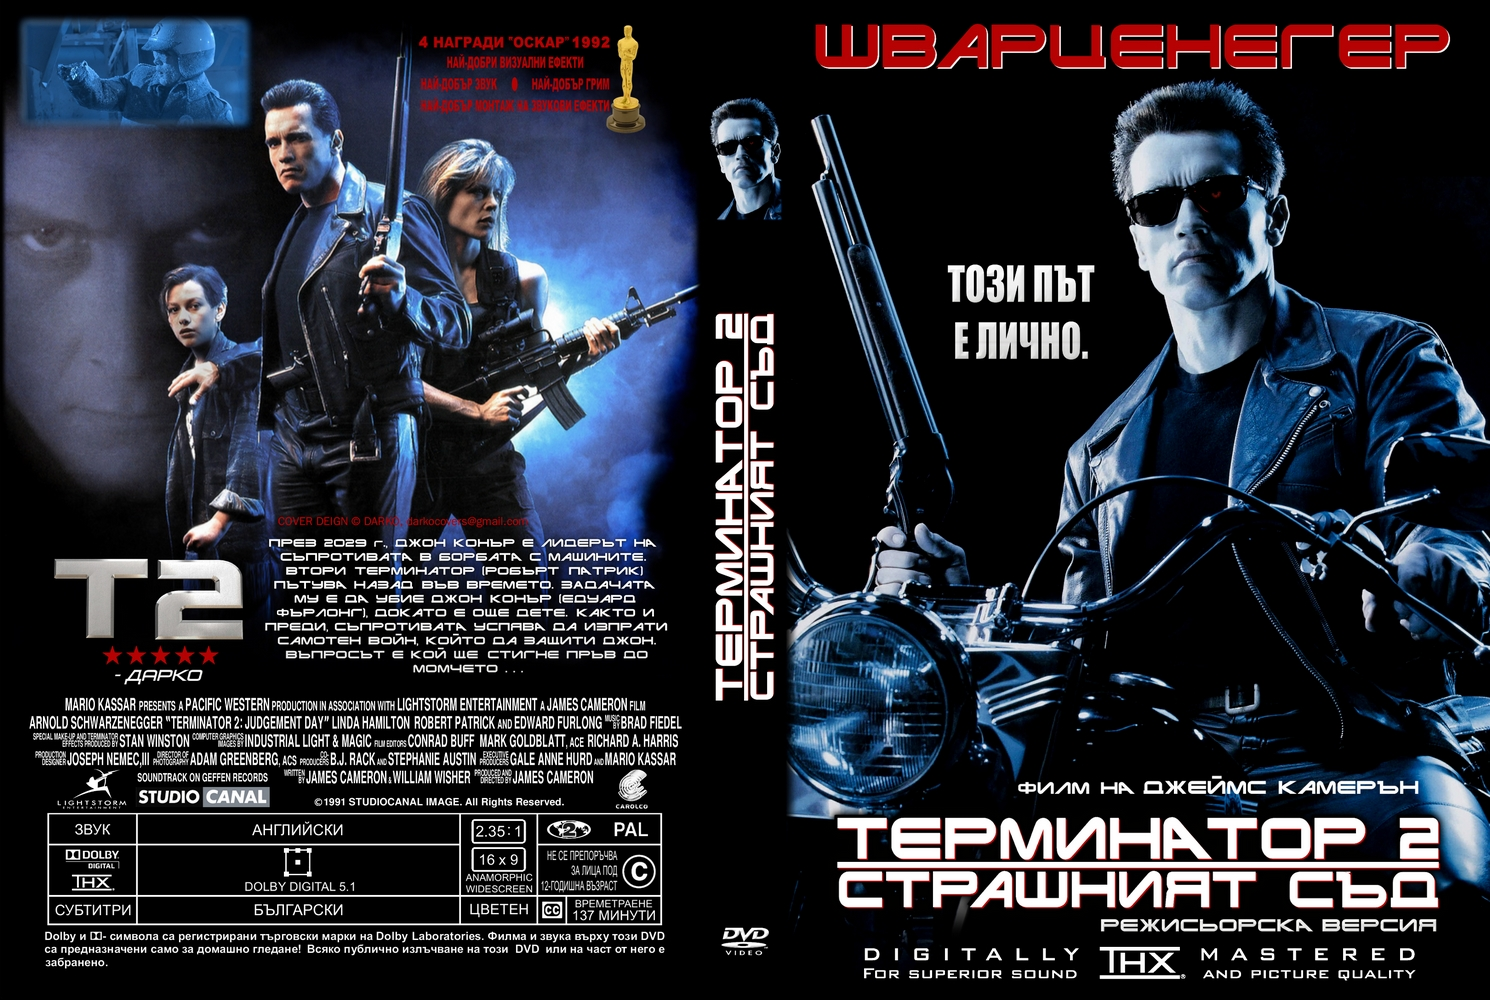 Terminator 2 + The Prophecy 2 | Double Feature  |The Terminator 2 Cover